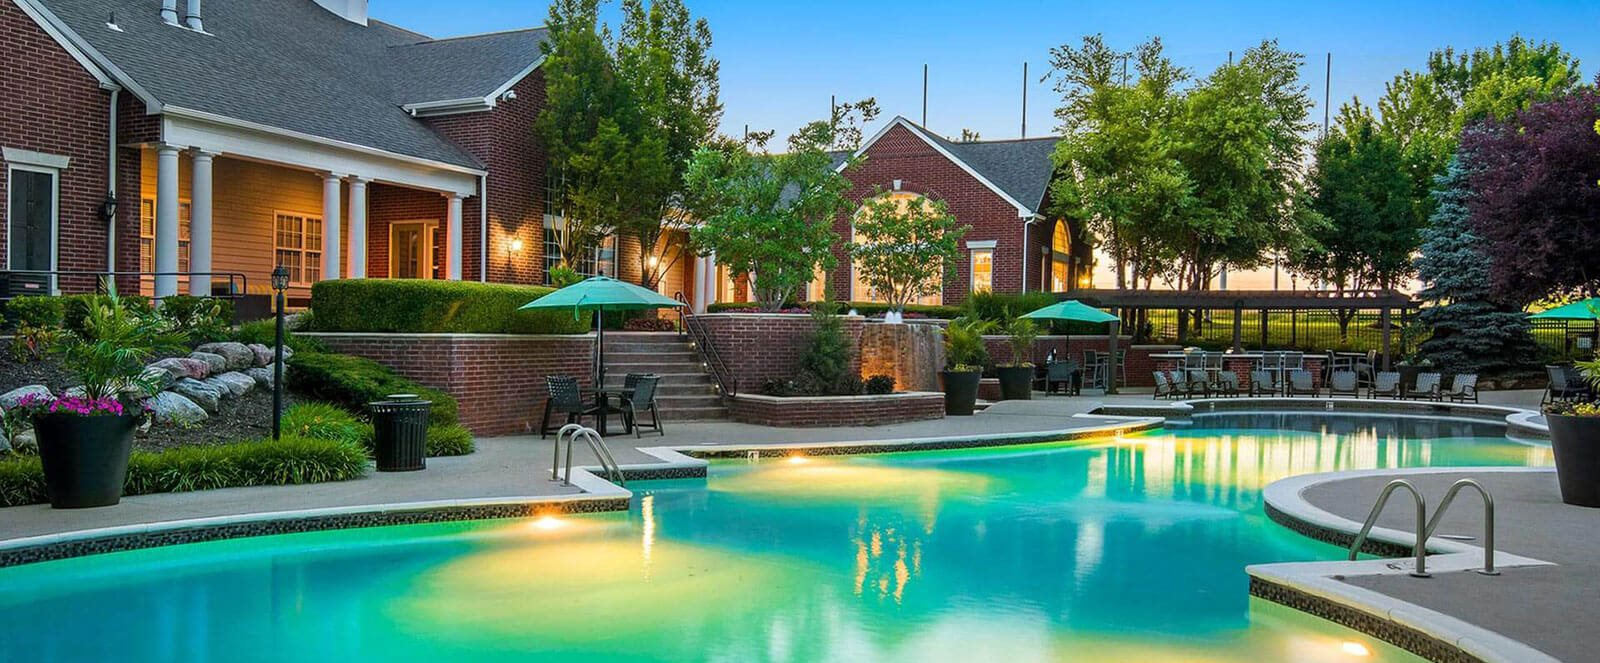 Refreshing Swimming Pool with Relaxing Poolside Patio a Cambridge Square Apartments, Overland Park, KS 66211